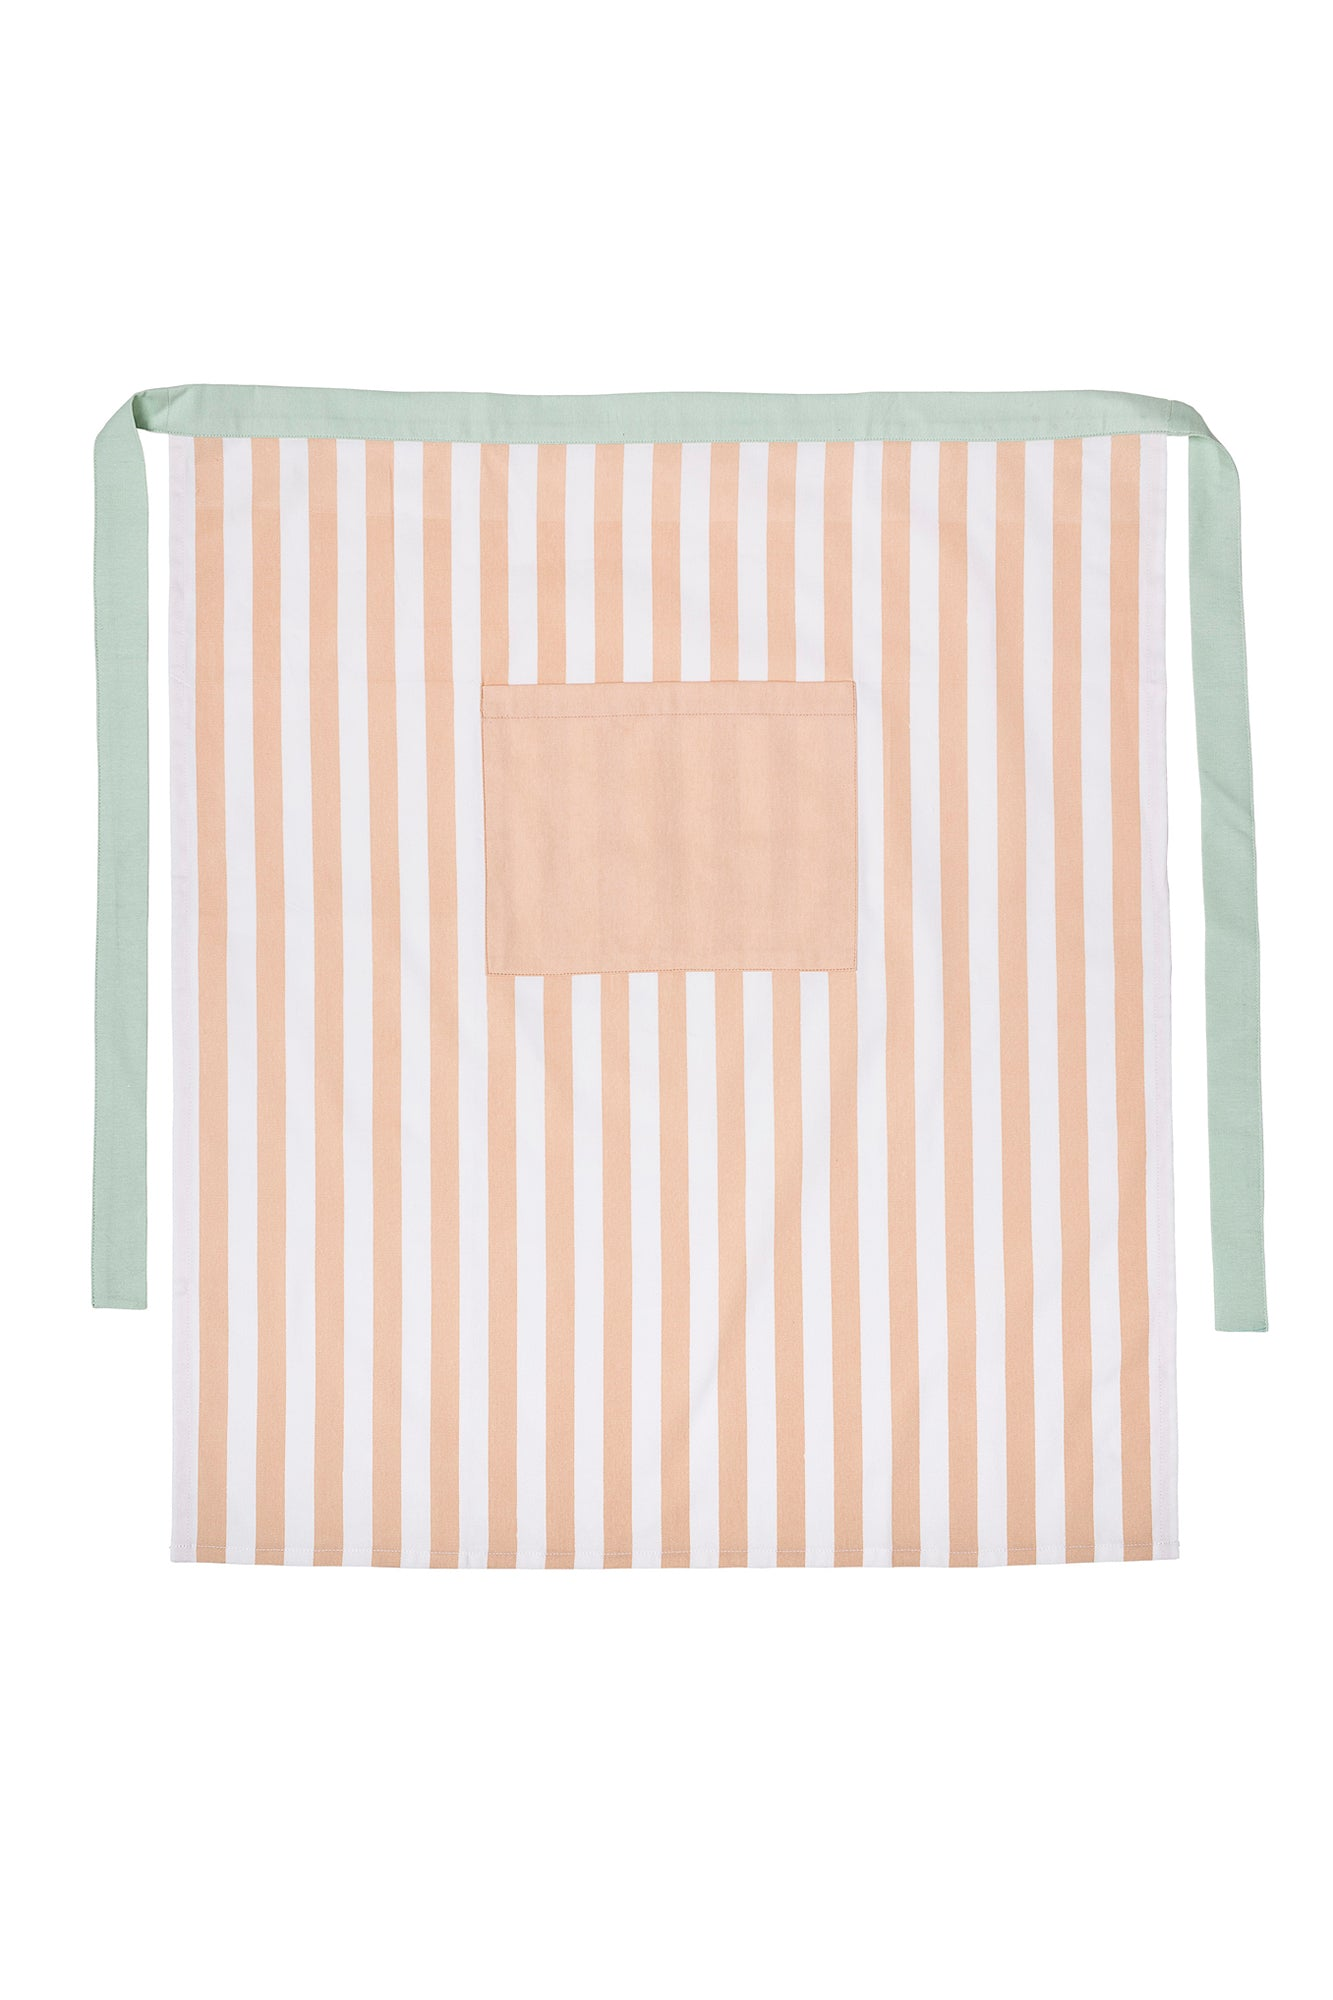 Apricot Stripes Apron, Kitchen Accessories, Bloomingville - 3LittlePicks